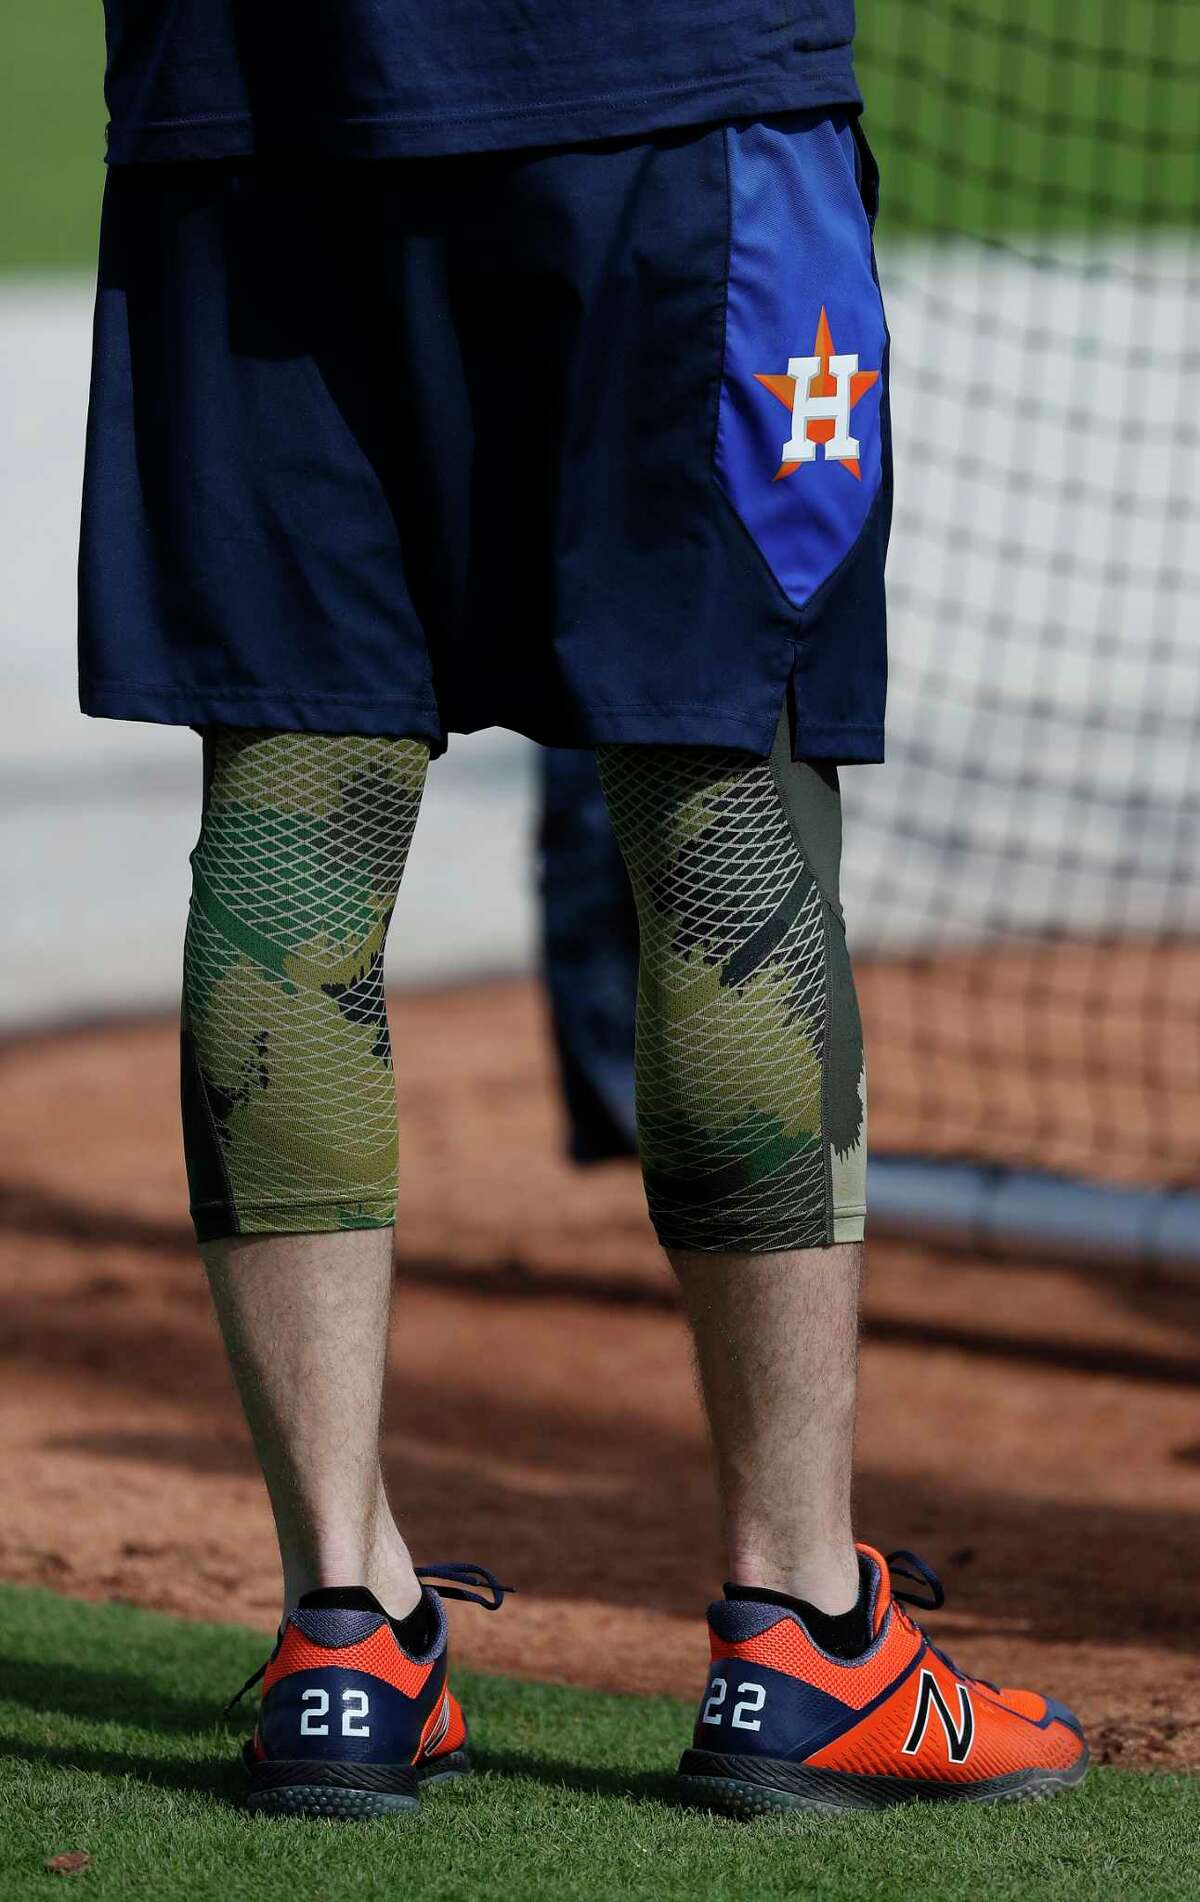 Houston Astros Josh Reddick takes voluntary batting practice during a shortened spring training day at The Ballpark of the Palm Beaches, Sunday, Feb. 18, 2018, in West Palm Beach. Position players join the pitchers and catchers for a full squad workout, Monday.